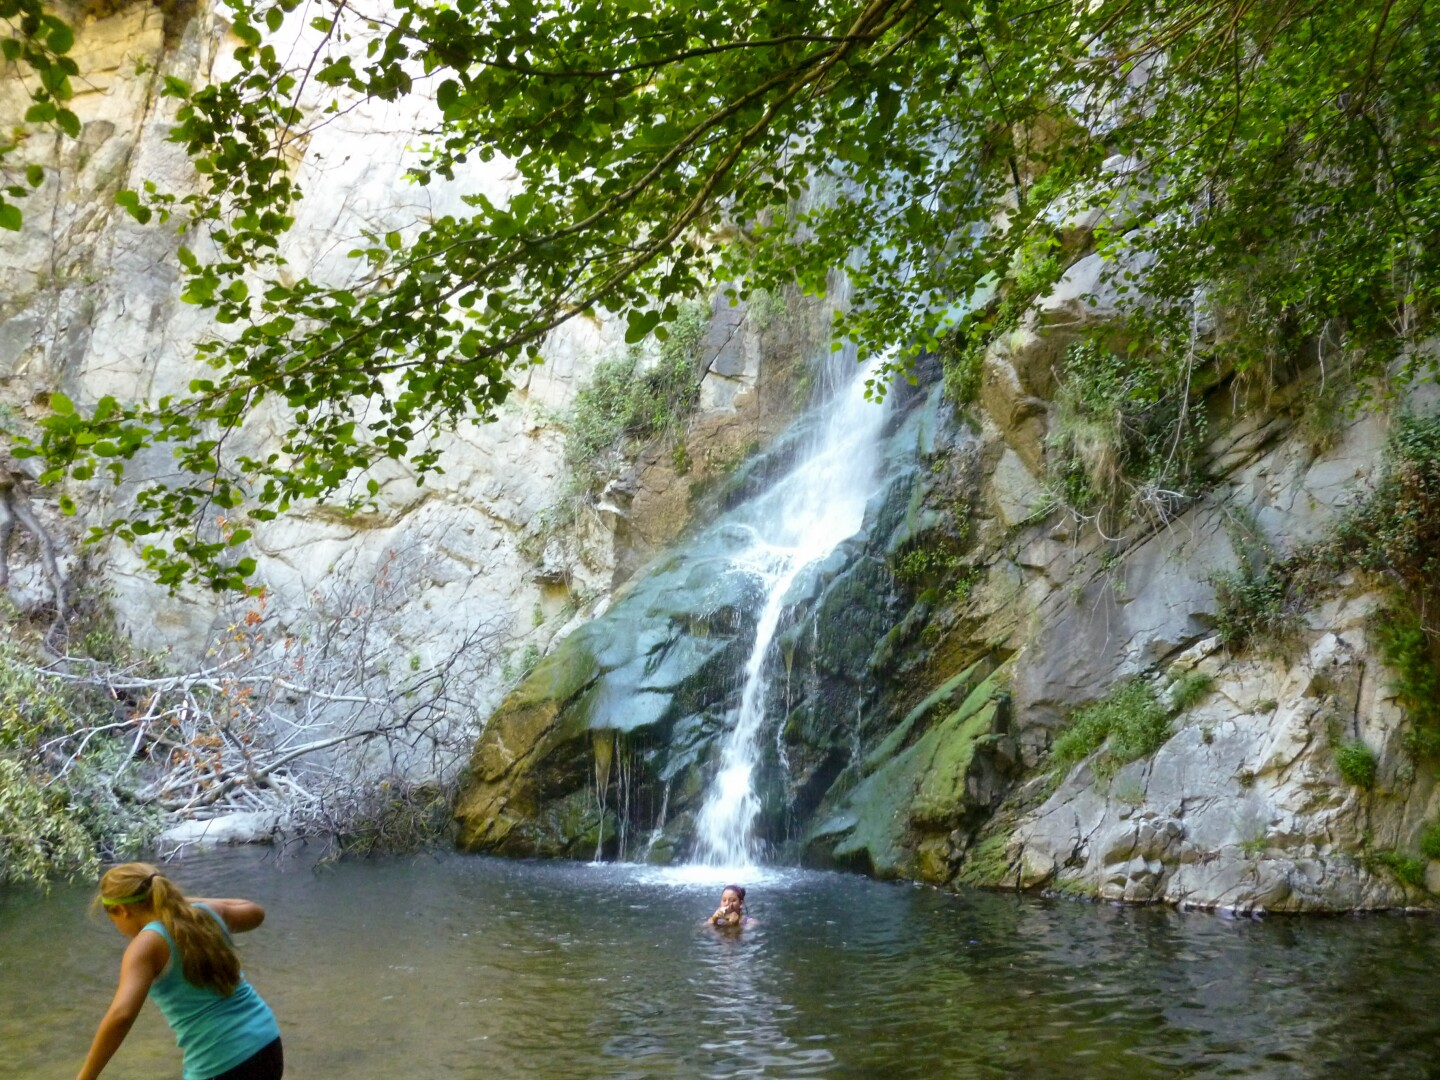 Hikers enjoy a swim in the pool of water from the Sturtevant Falls in Big Santa Anita Canyon.